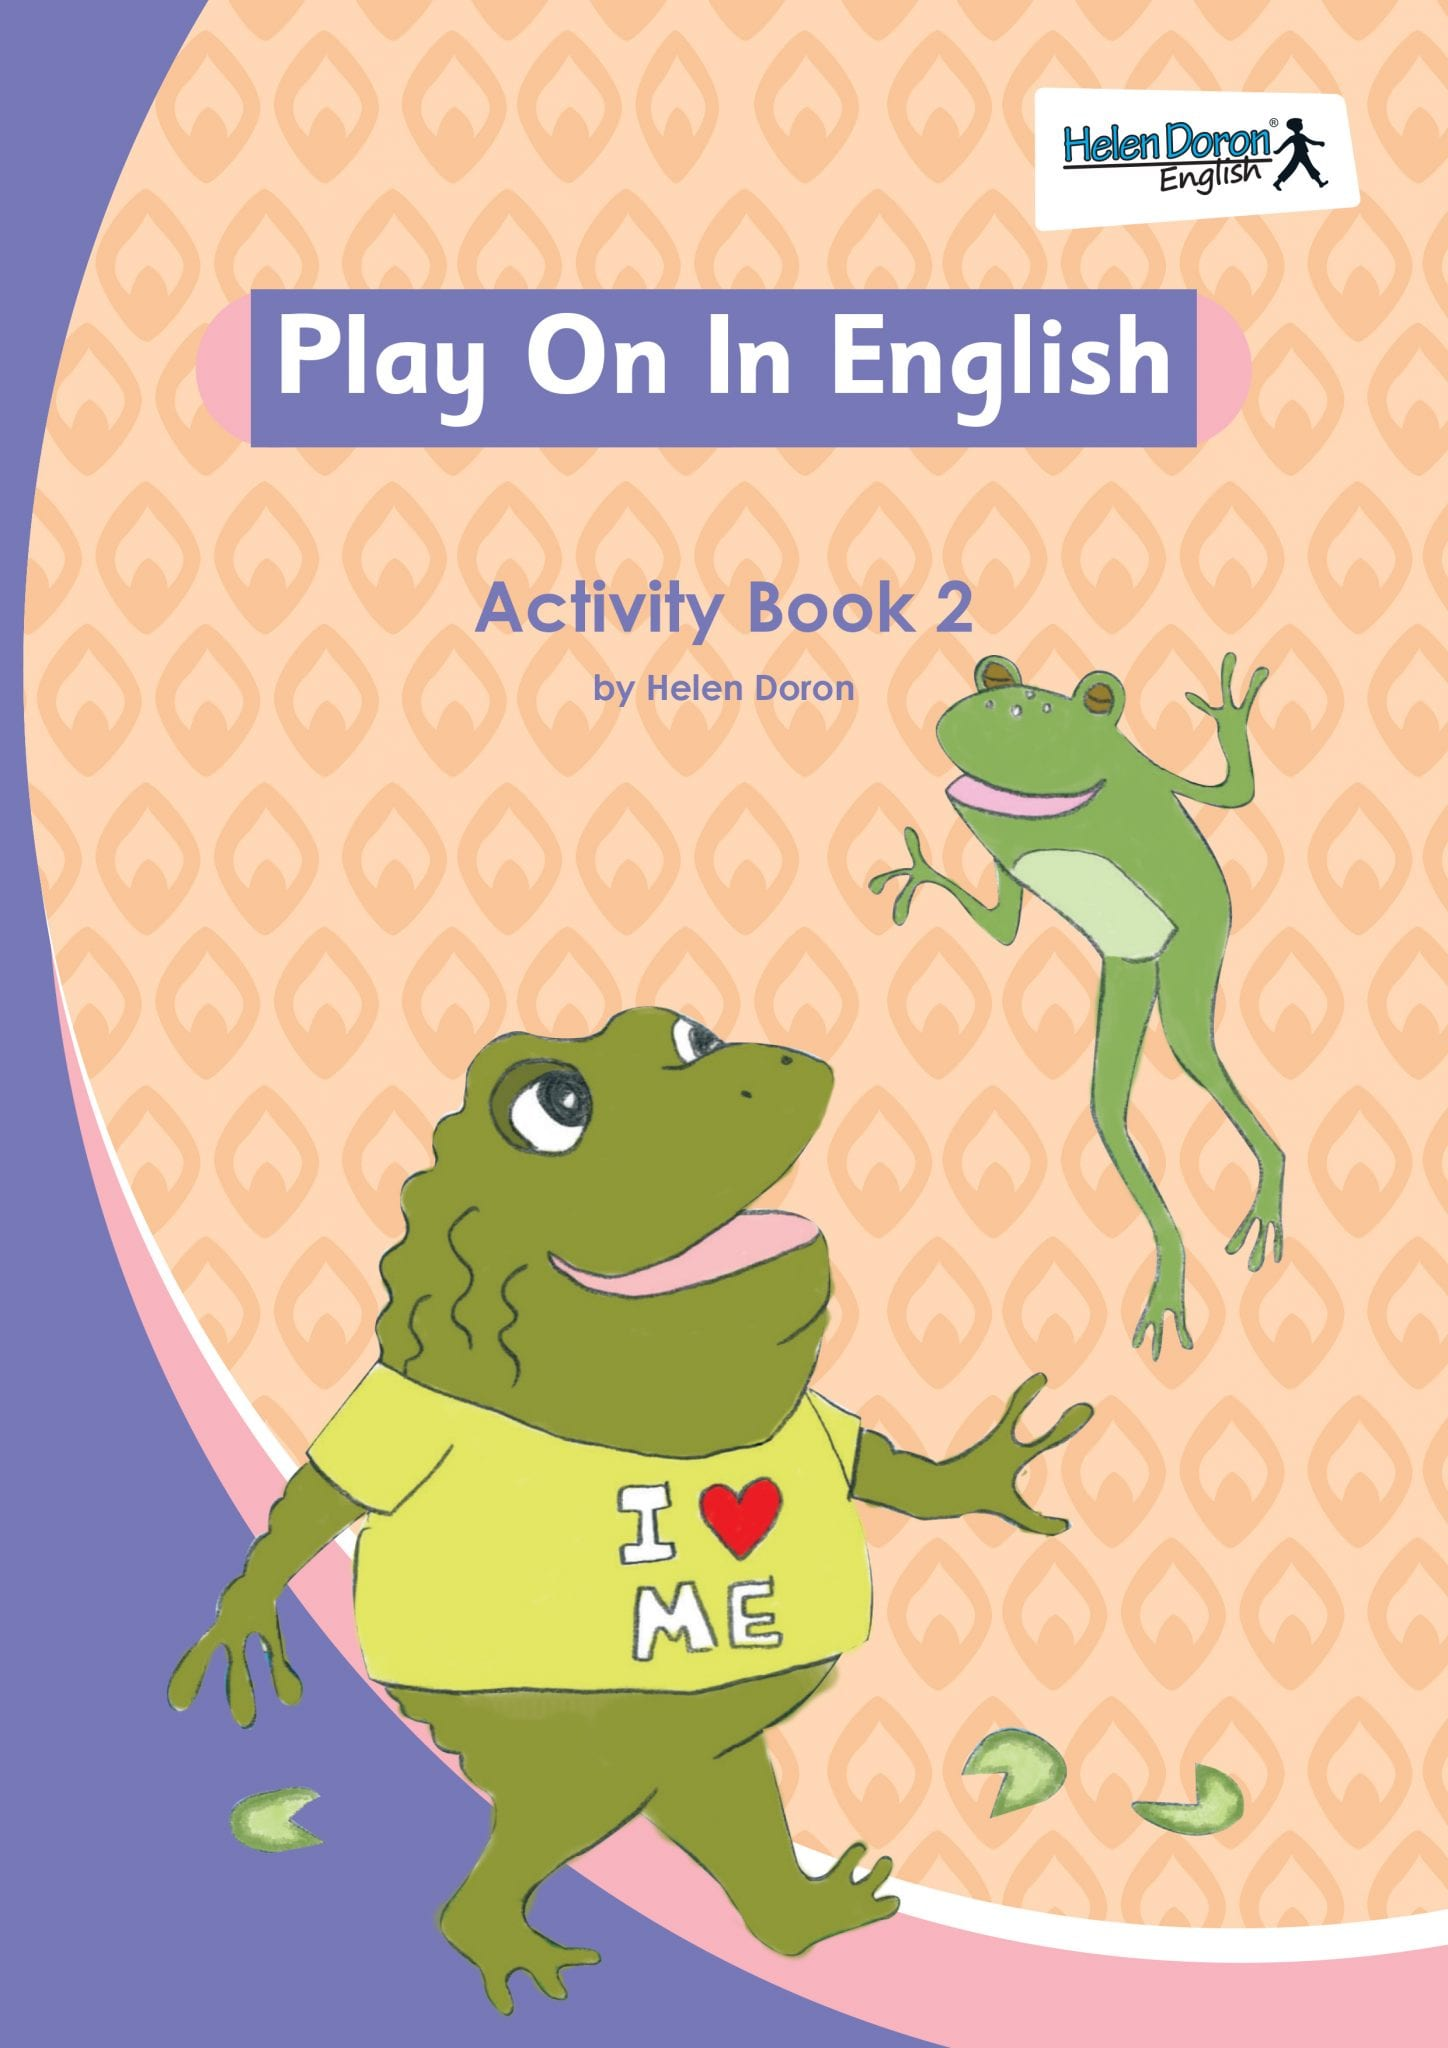 Play On in English